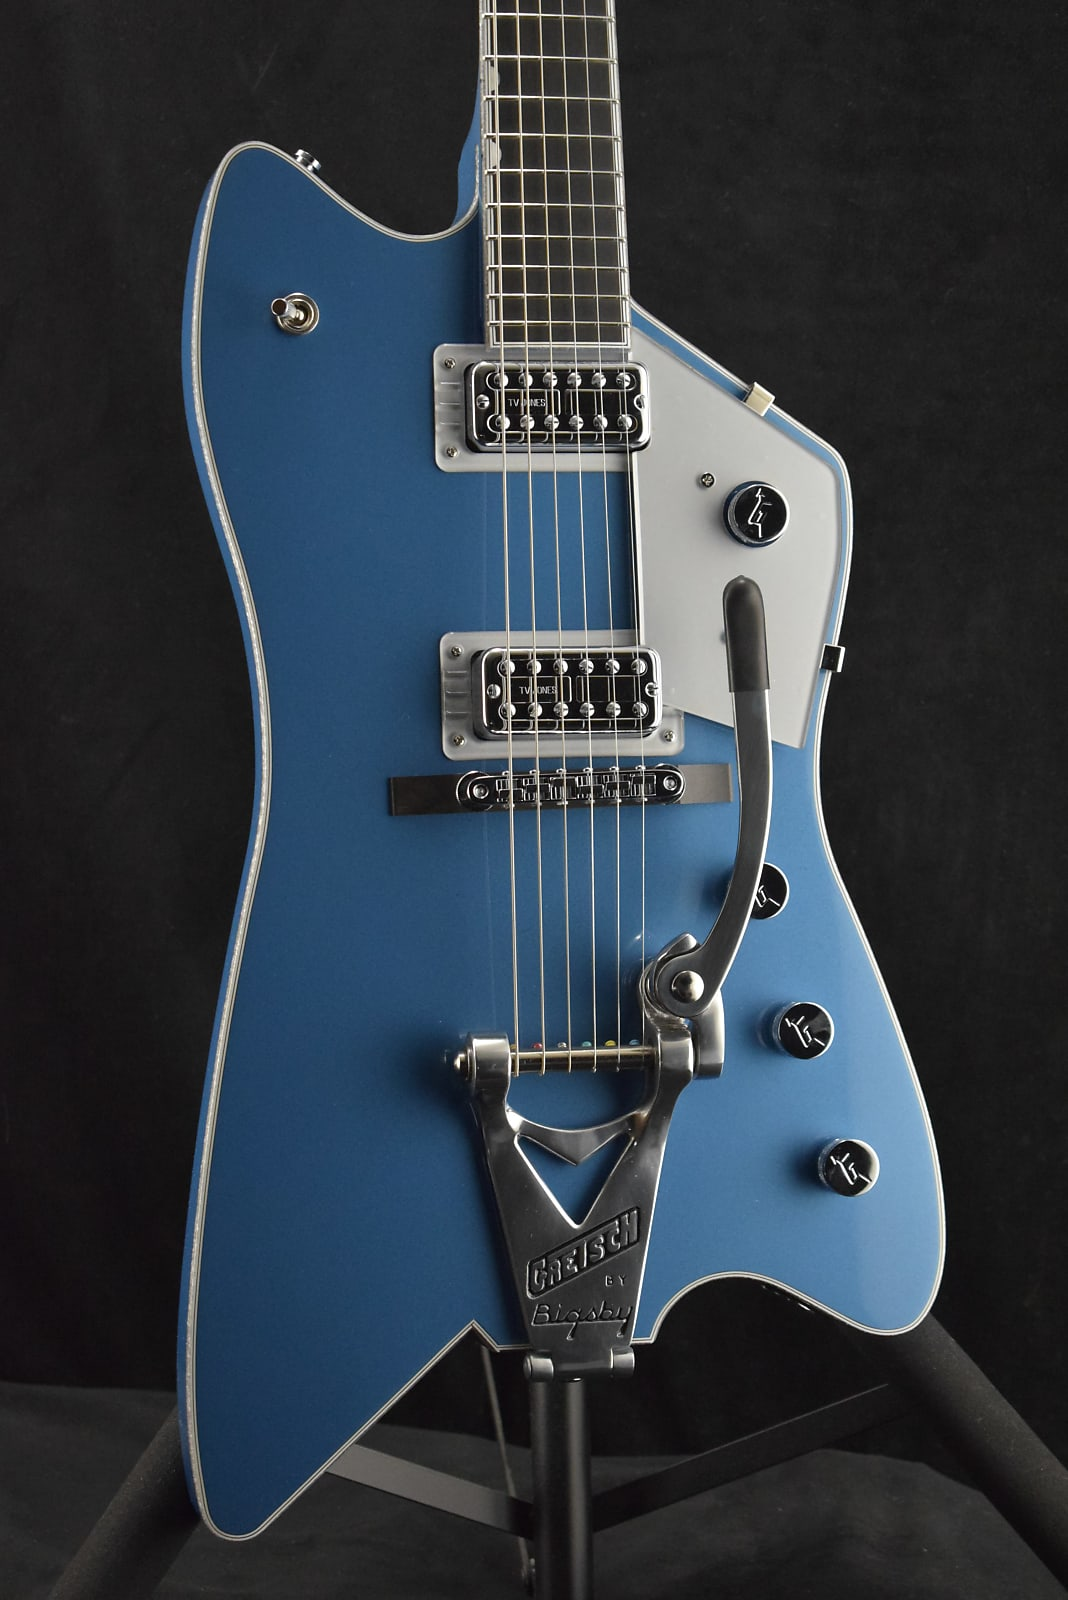 Gretsch G6199-TSL-LPB Billy-Bo Jupitor Thunderbird Lake Placid Blue (Built for Fuller's only)